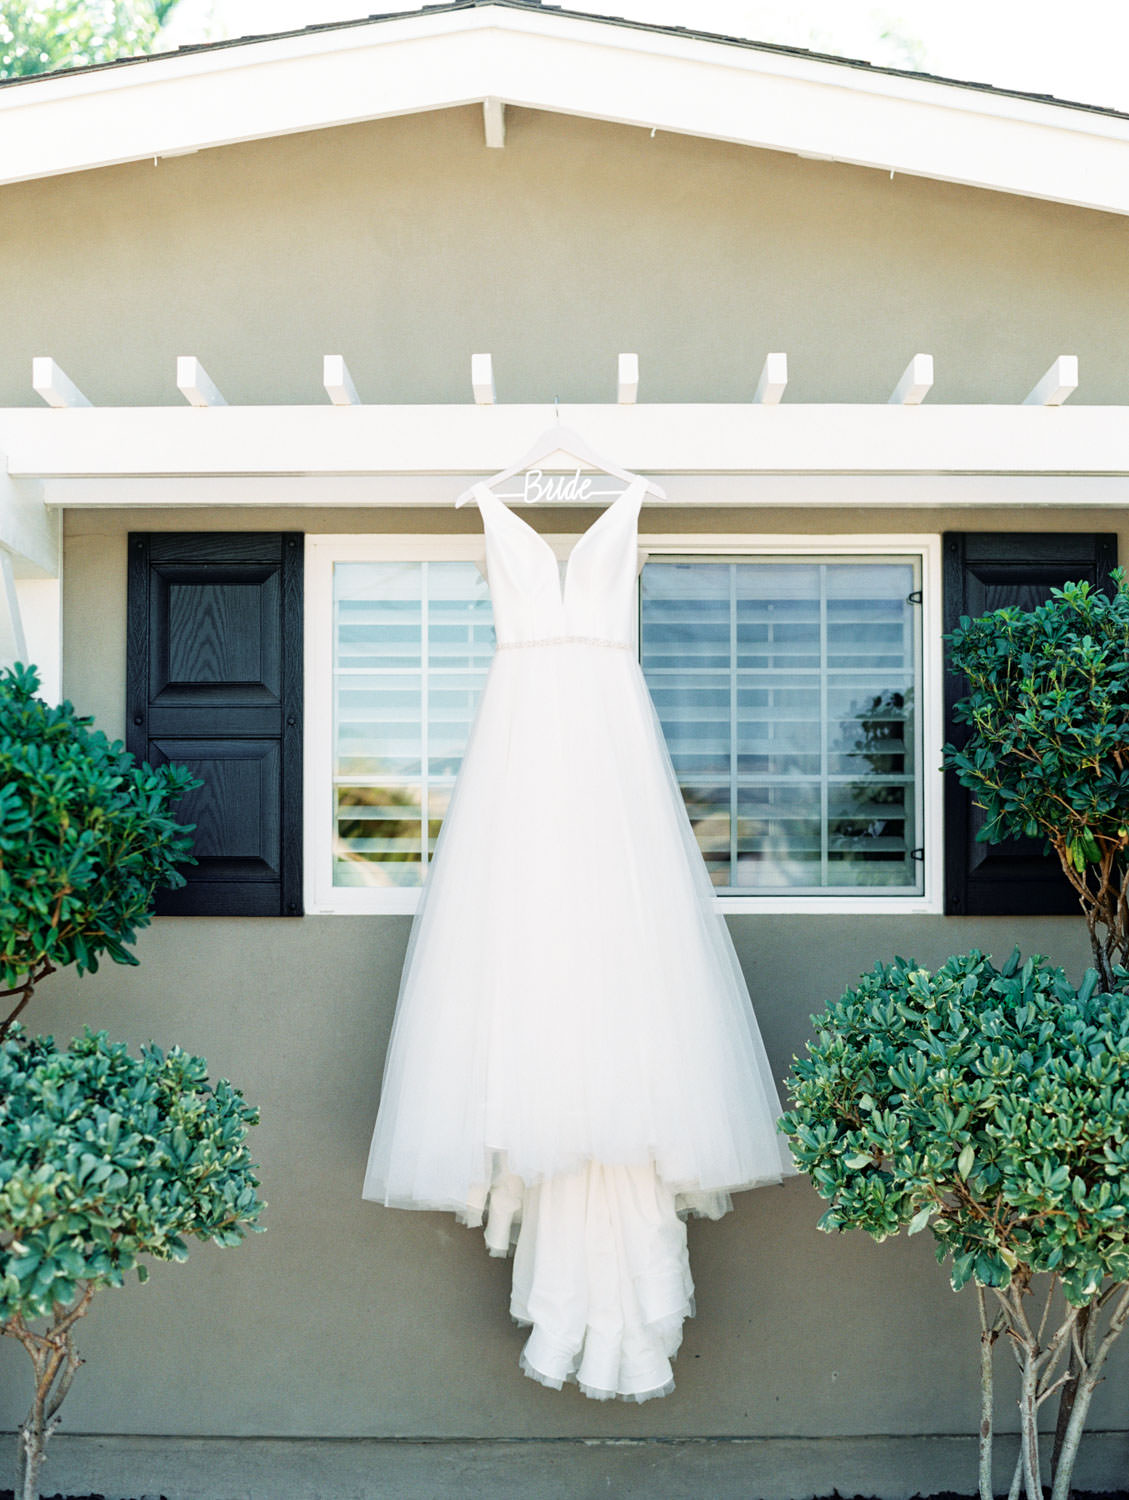 Bride's gown from Stella York hanging outside her home. Estancia La Jolla wedding shot on film by Cavin Elizabeth Photography. La Jolla wedding shot on film by Cavin Elizabeth Photography